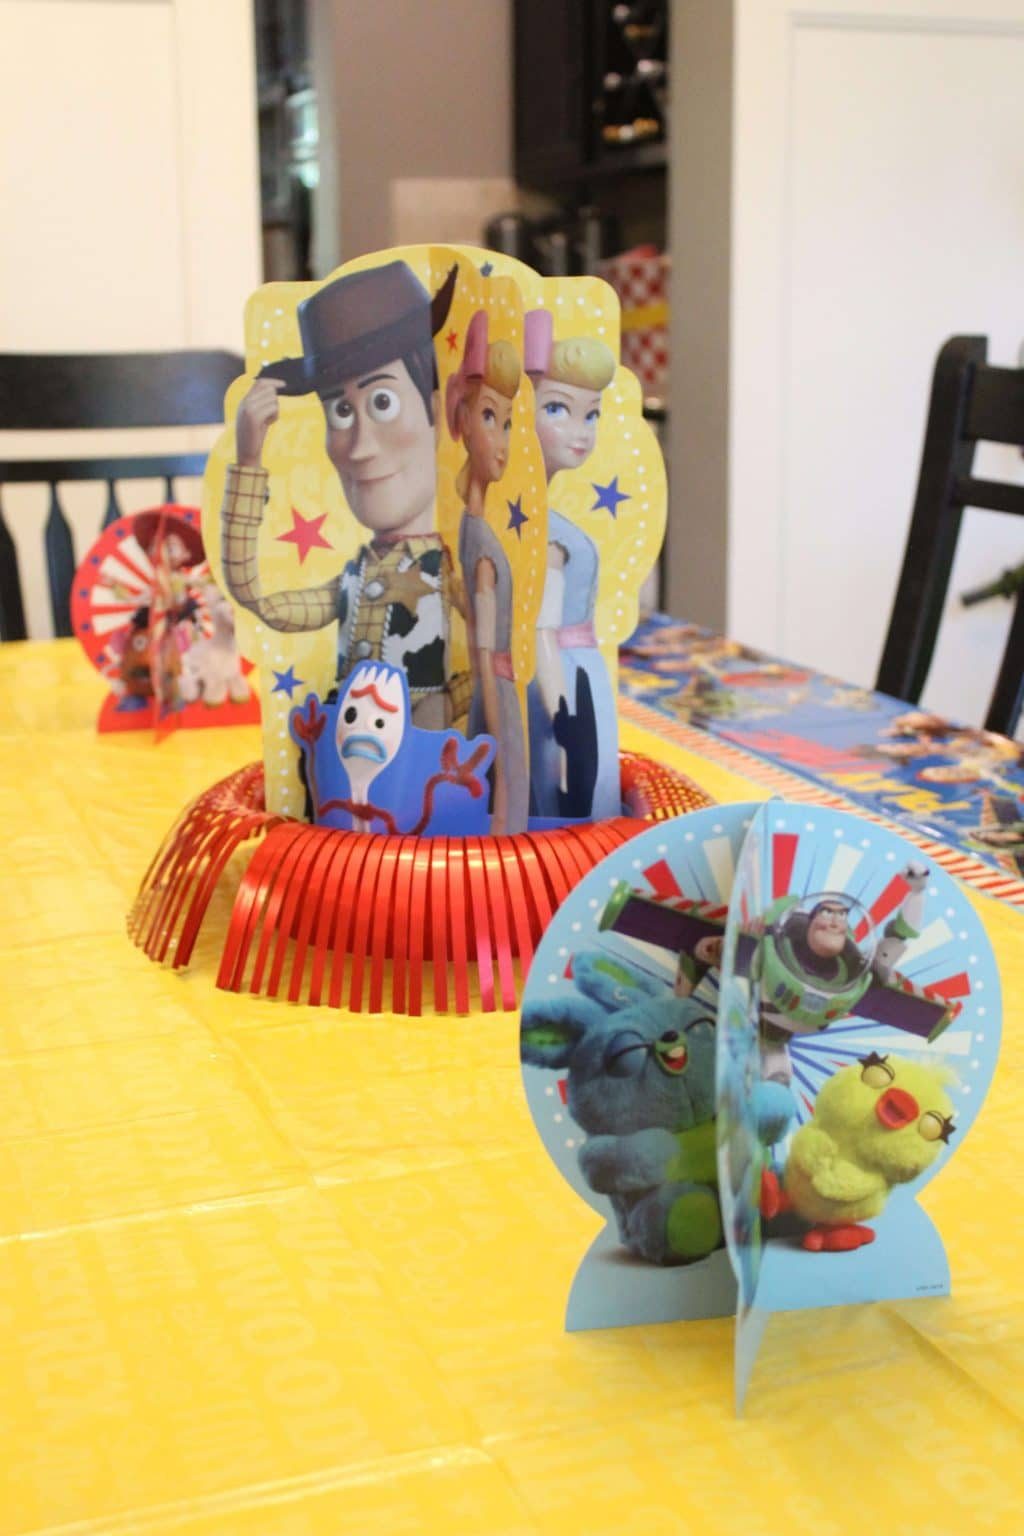 Toy Story 4 Party, Easy Birthday Party, Toy Story 4 Favor ideas, Stilettos and Diapers, Toy Story Centerpiece